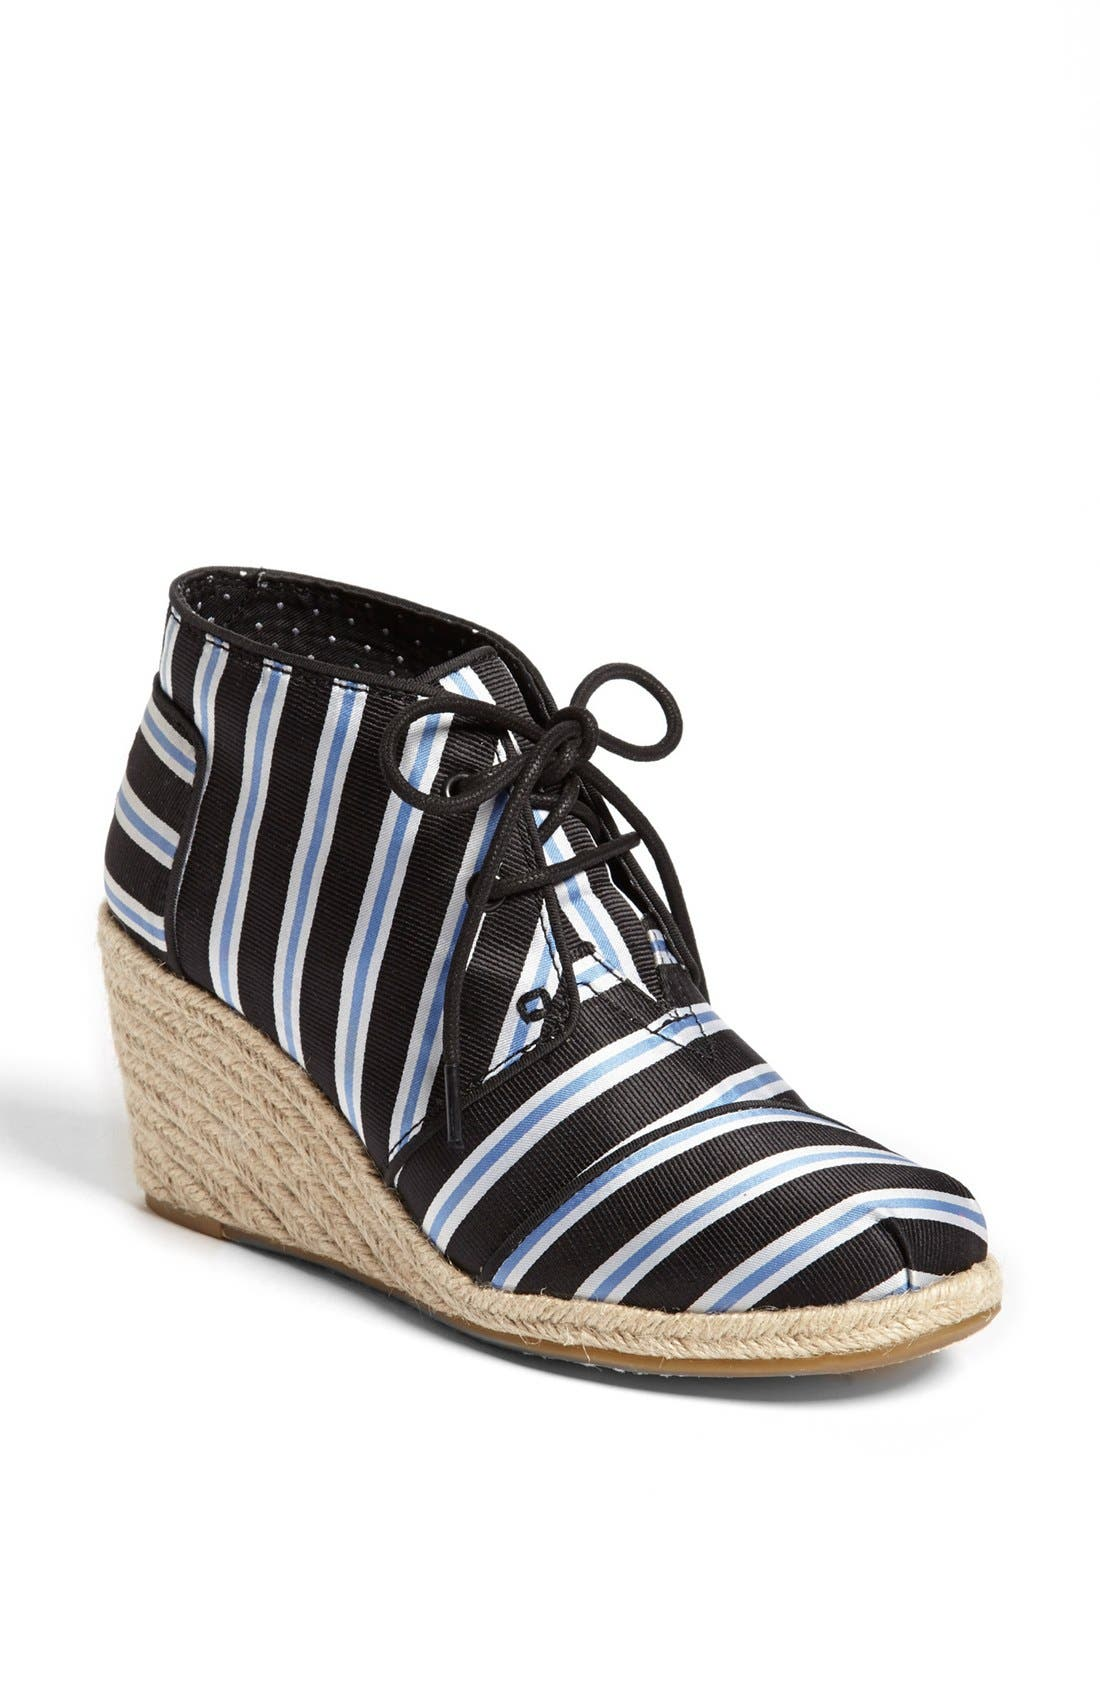 Alternate Image 1 Selected - TOMS 'Tabitha Simmons' Wedge Bootie (Women)